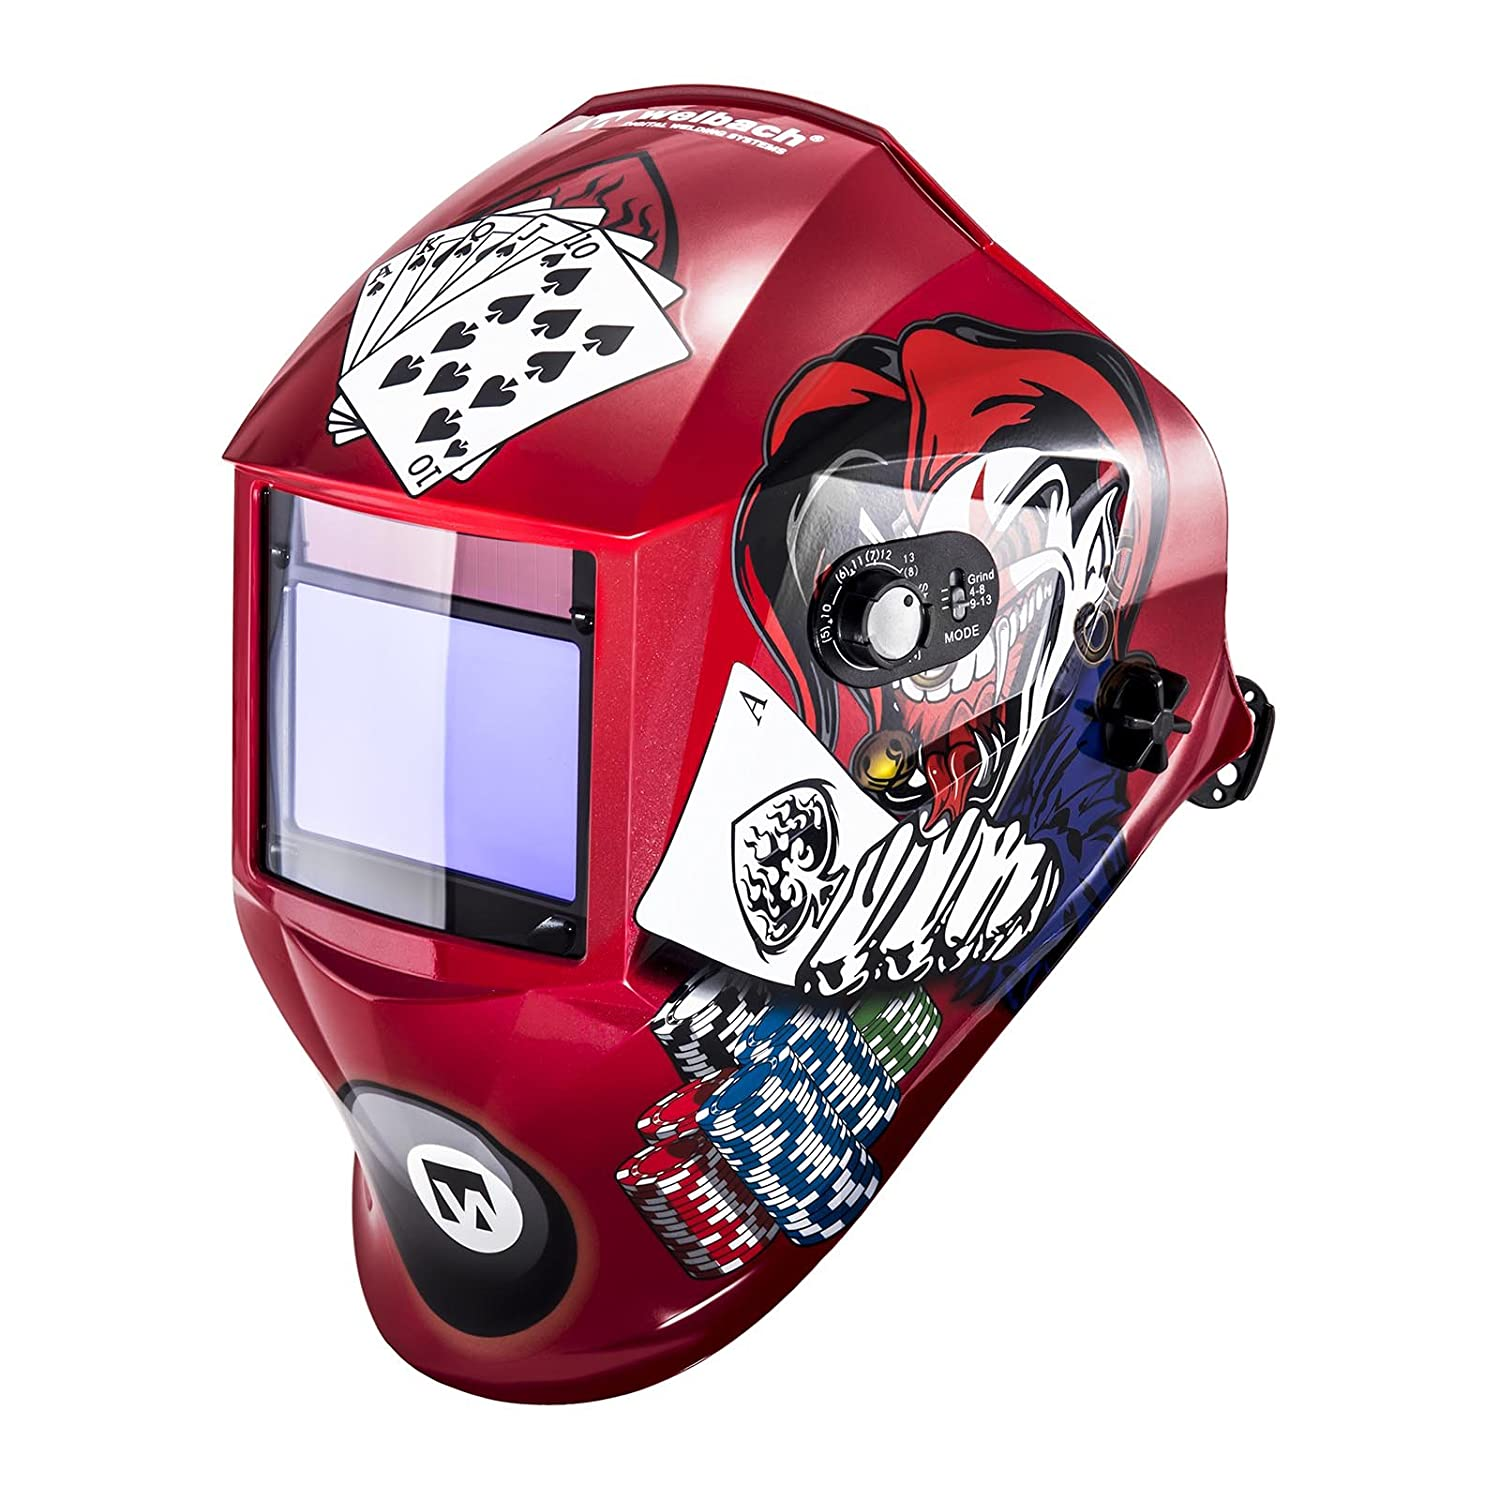 PROFESSIONAL SERIES Stamos Germany Pokerface Pokerface Welding helmet